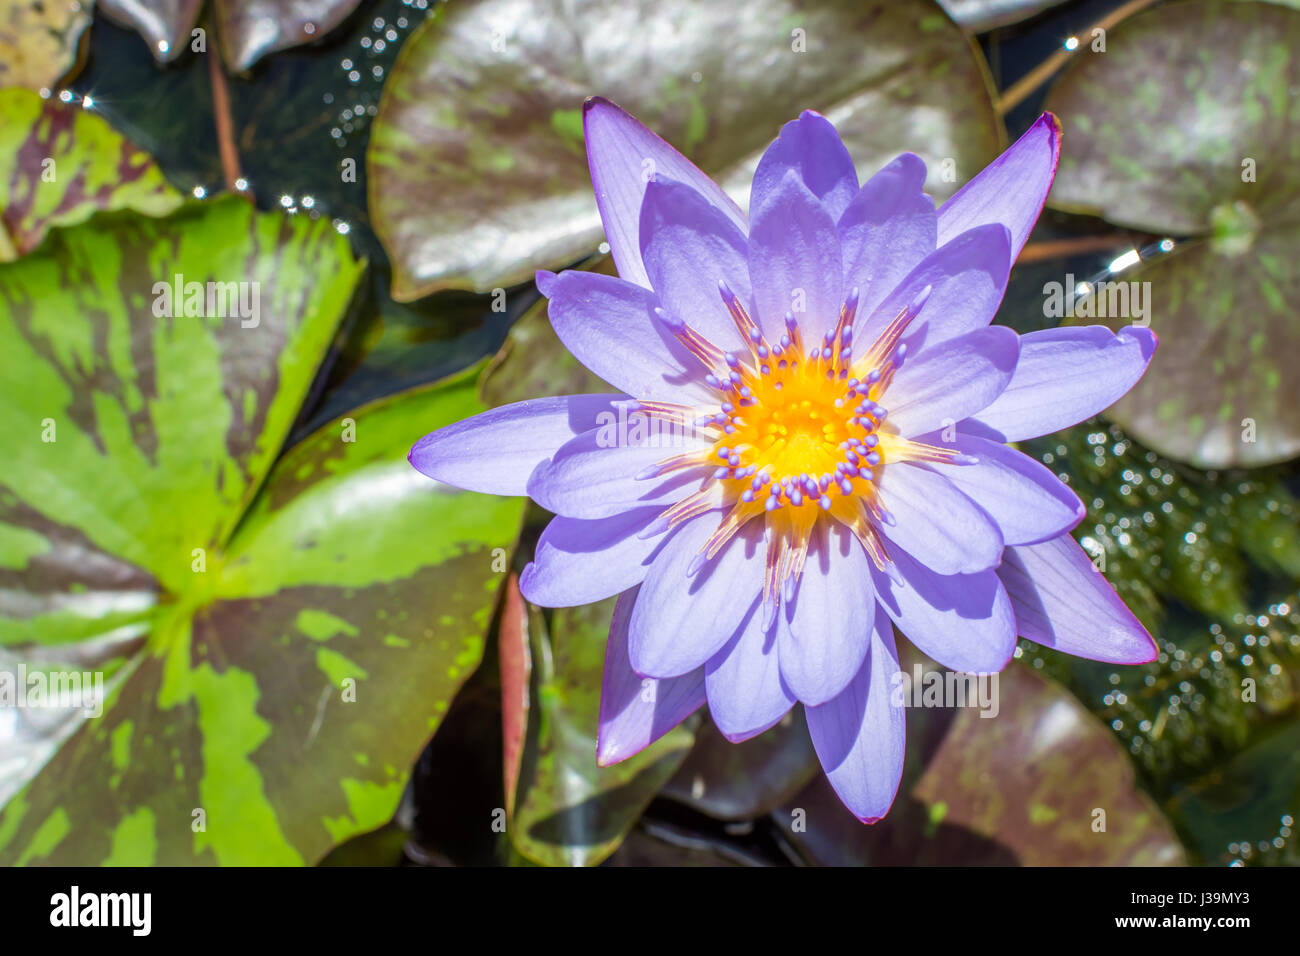 Egyptian lotus flower stock photos egyptian lotus flower stock a blue lotus also known as the blue egyptian lotus sprouting from lily pads dhlflorist Images